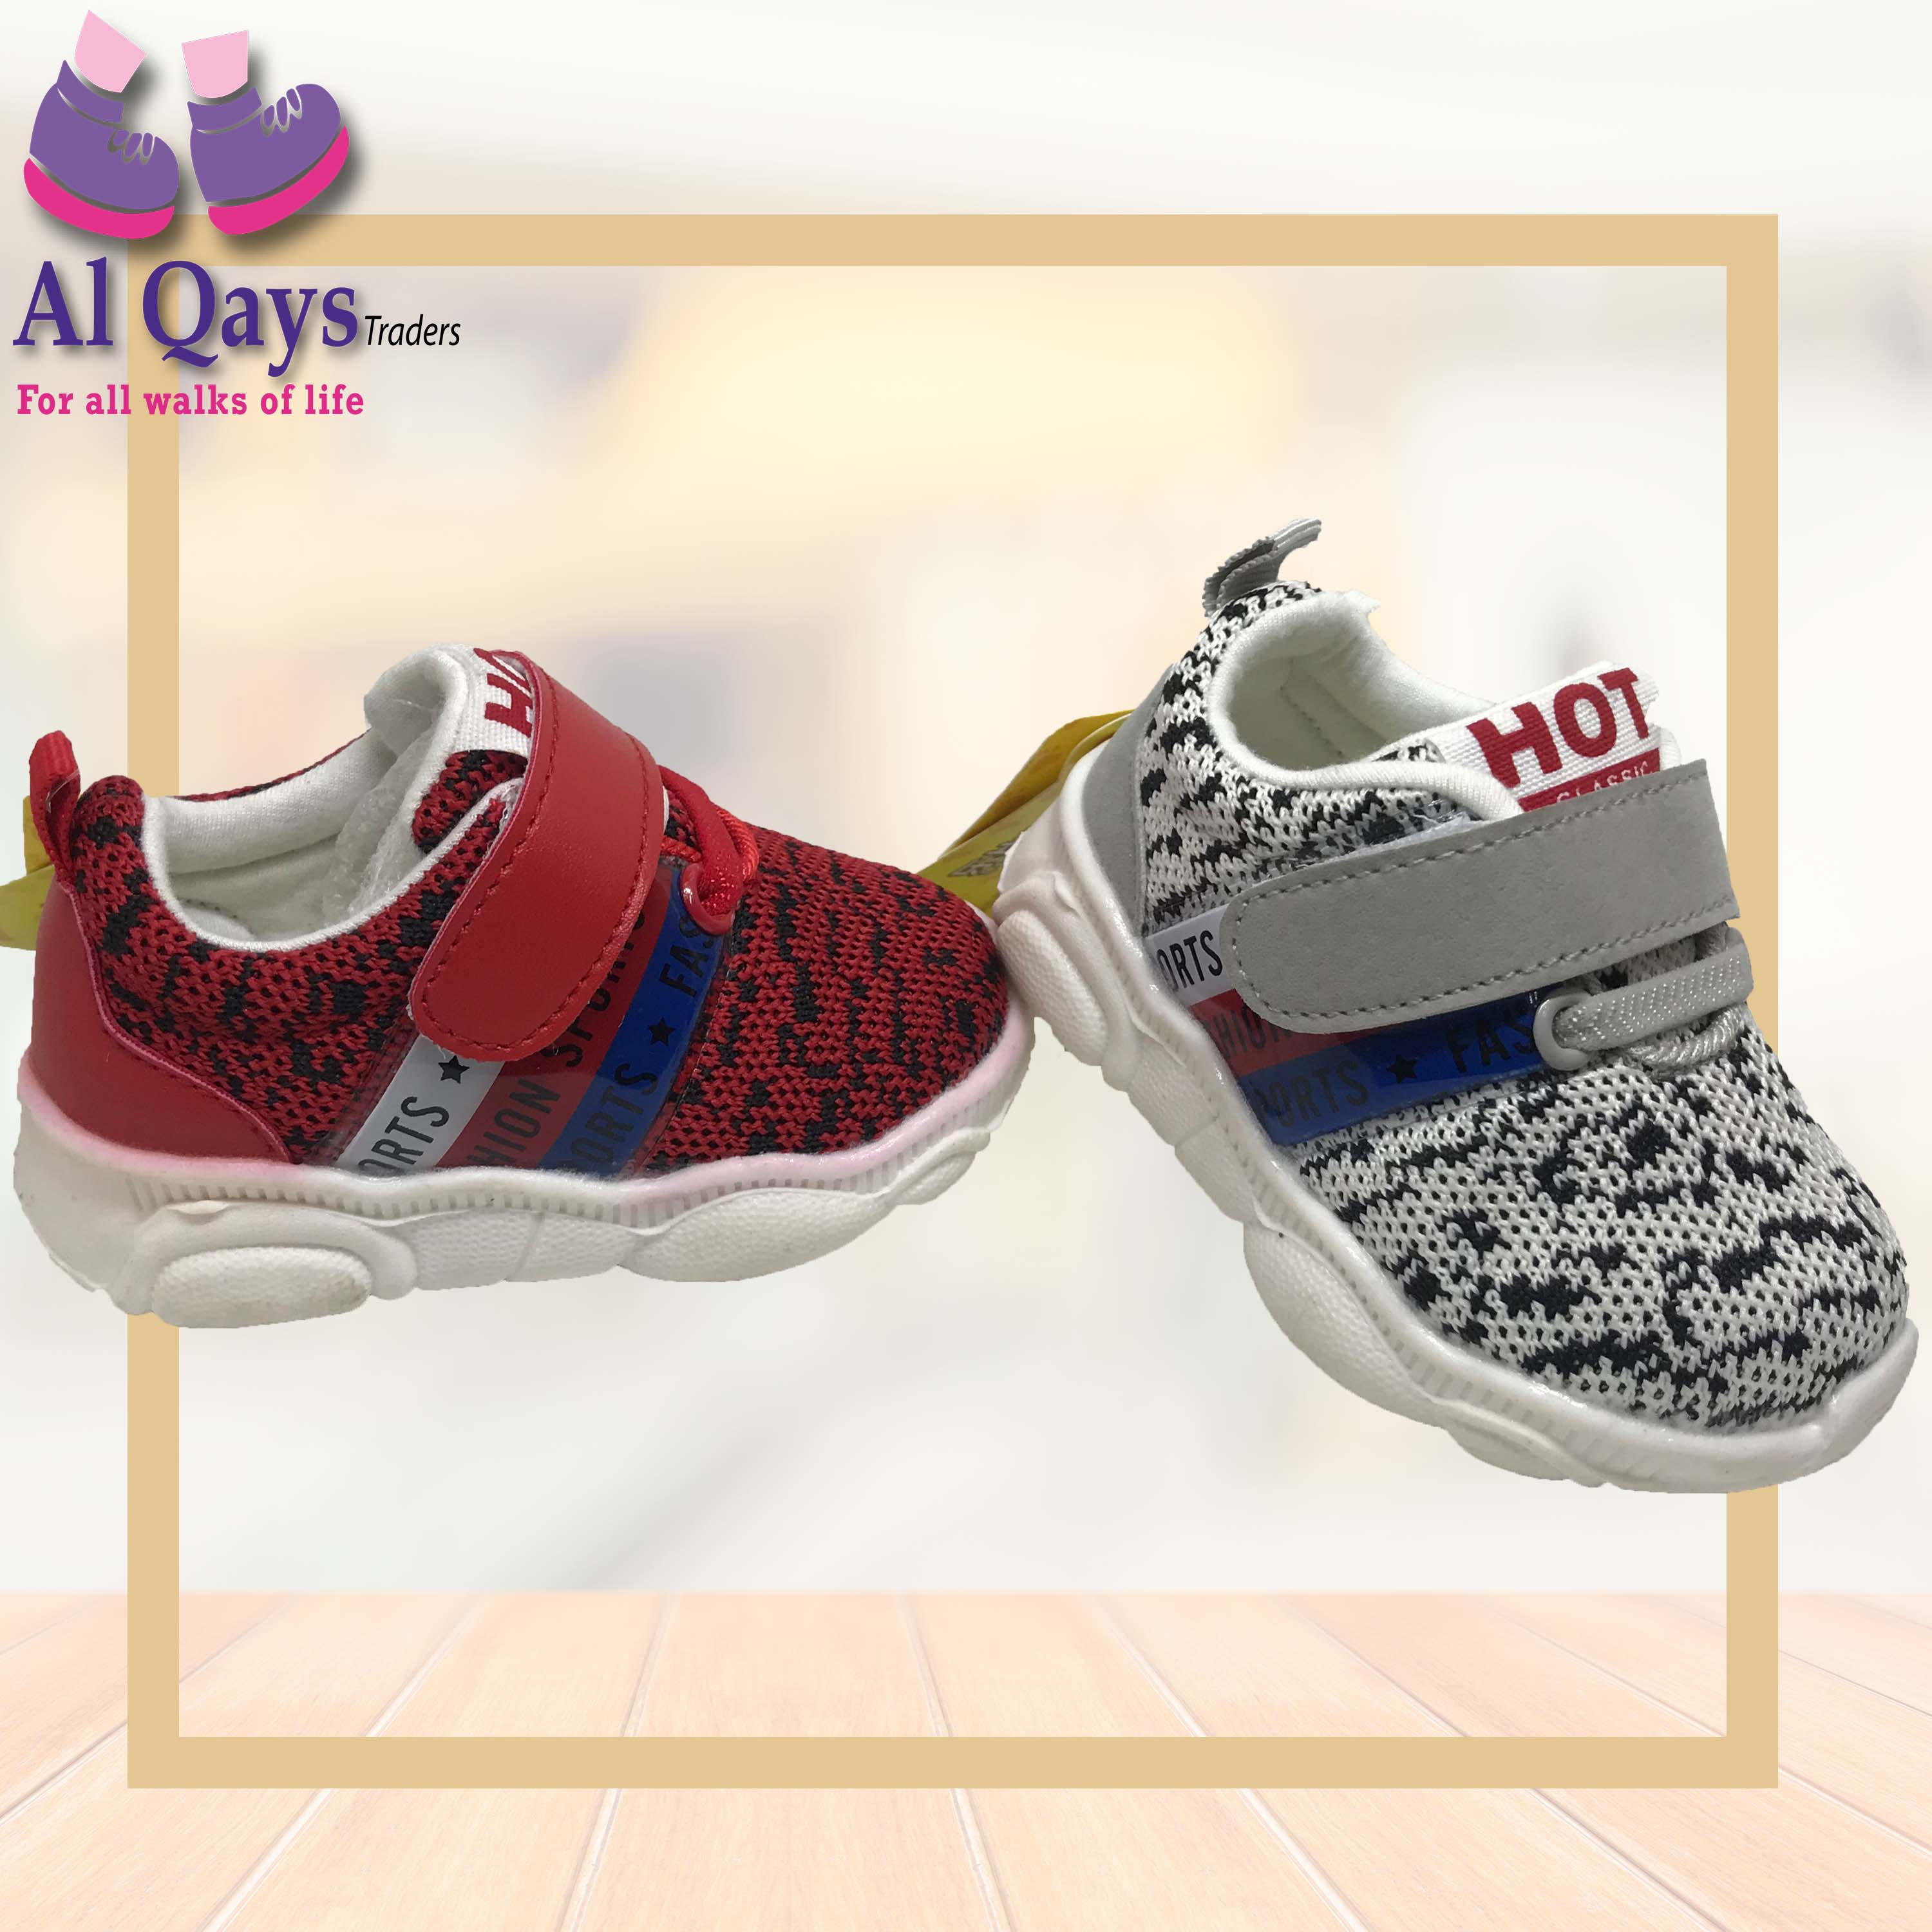 Branded HIGH QUALITY Toddler  Baby Boy Shoes - age 4 to 18 month - red and grey colour